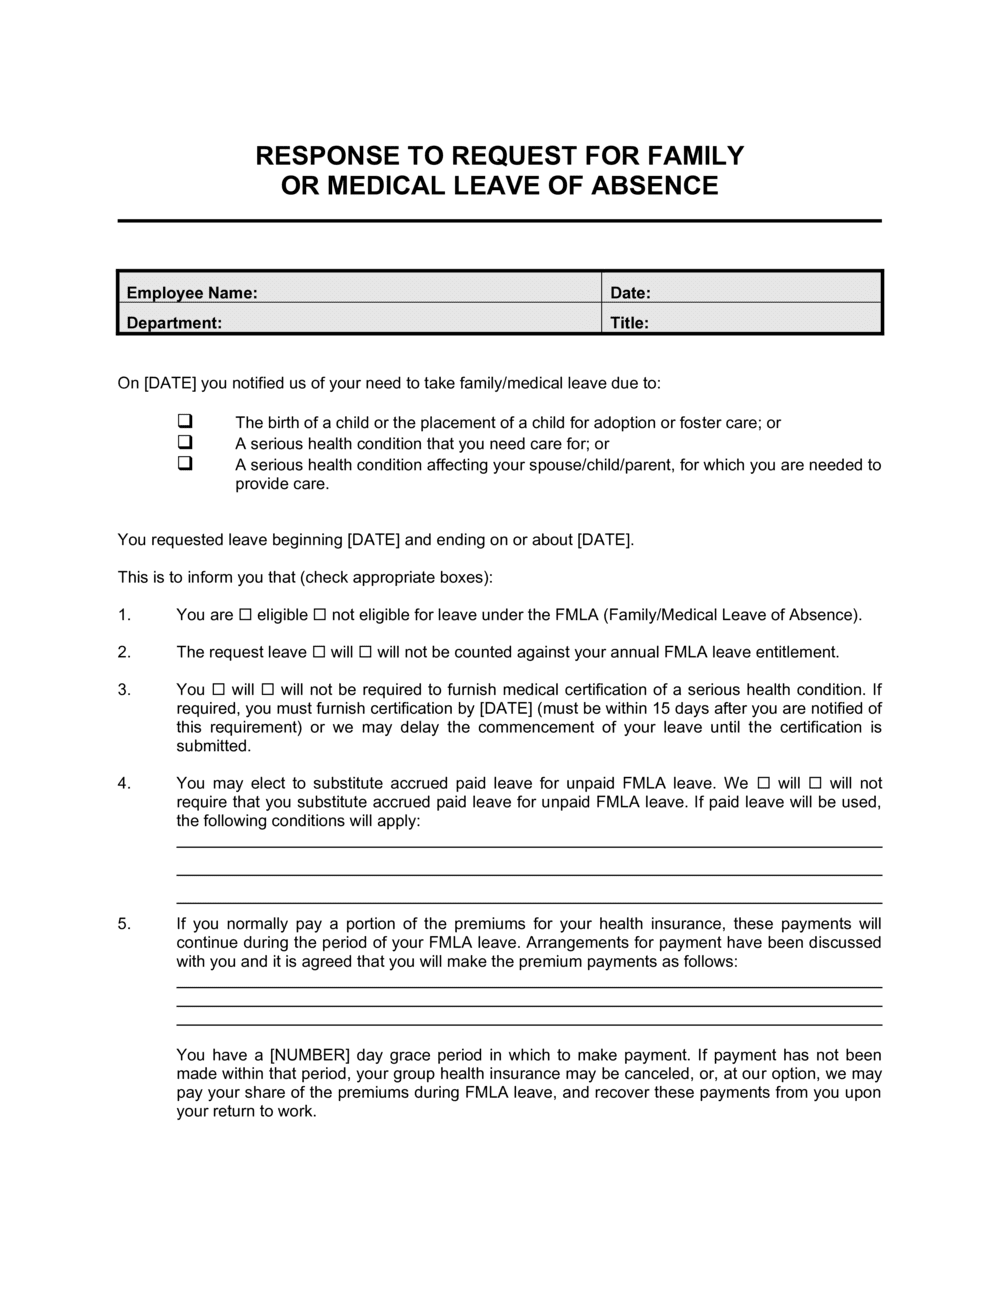 Business-in-a-Box's Response to Employee Request for Family or Medical Leave Template